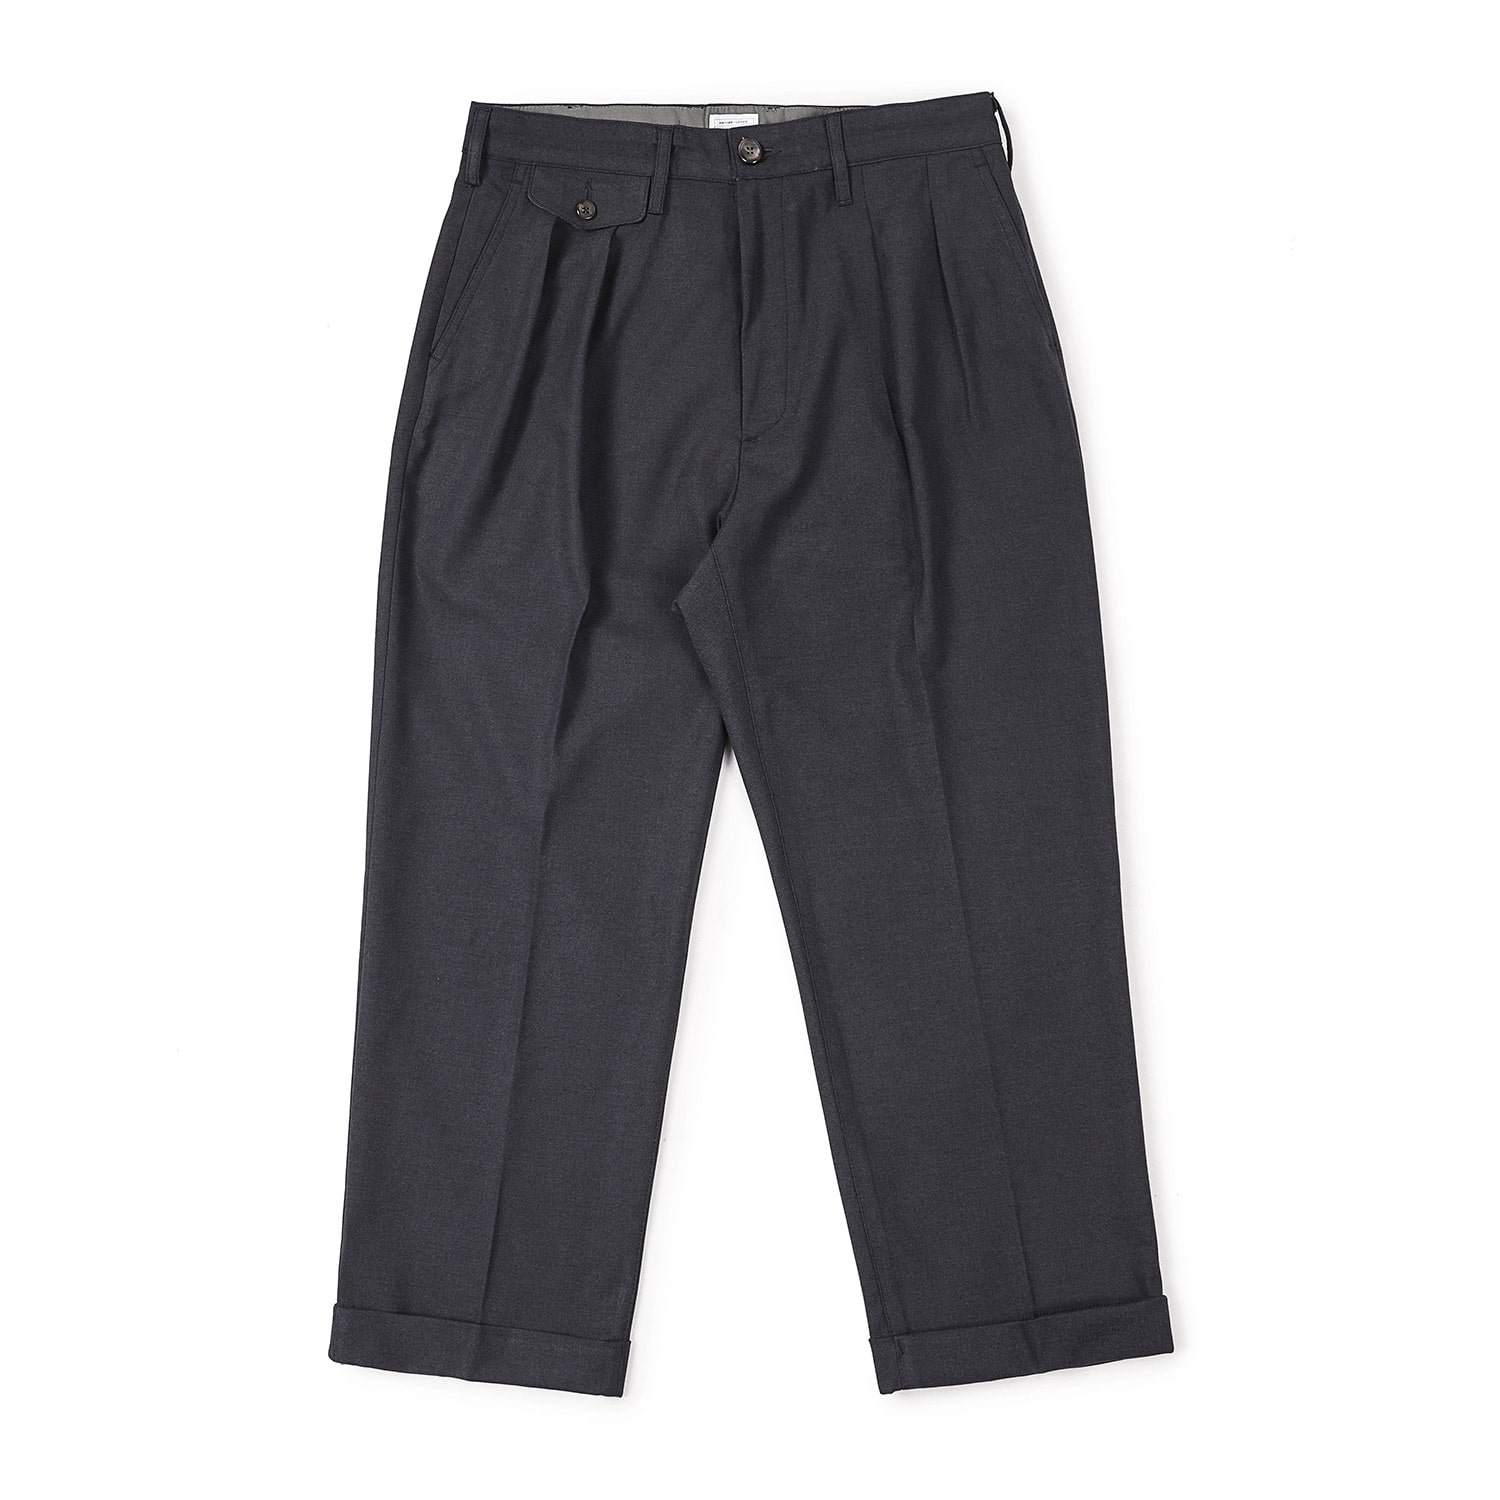 25% OFF_Newtype Turn-up Pants (Charcoal)